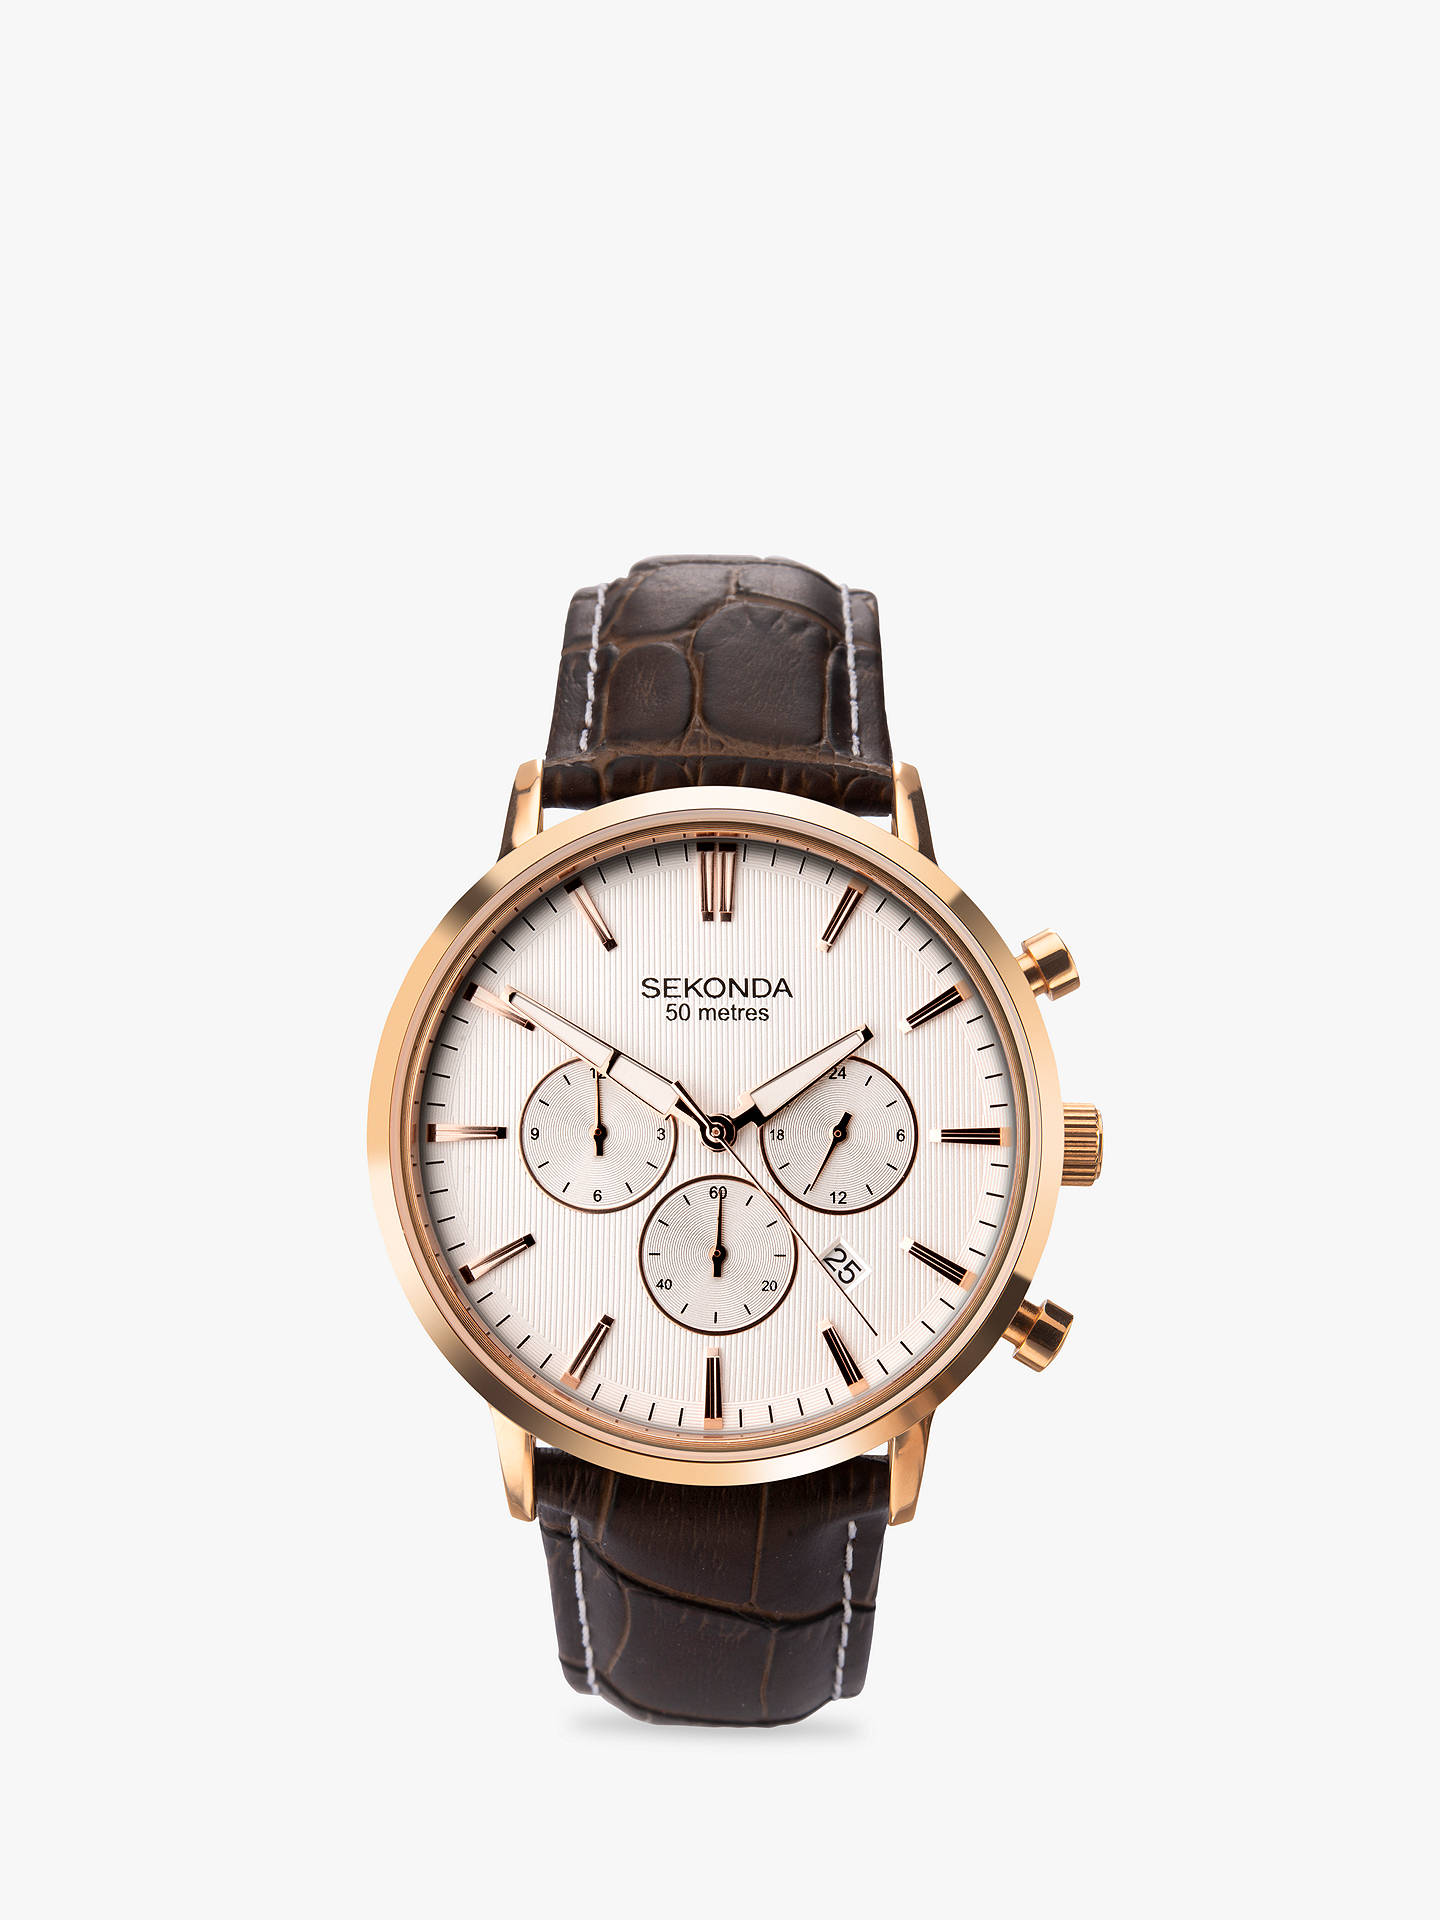 BuySekonda 1668.27 Men's Chronograph Date Leather Strap Watch, Brown/White Online at johnlewis.com